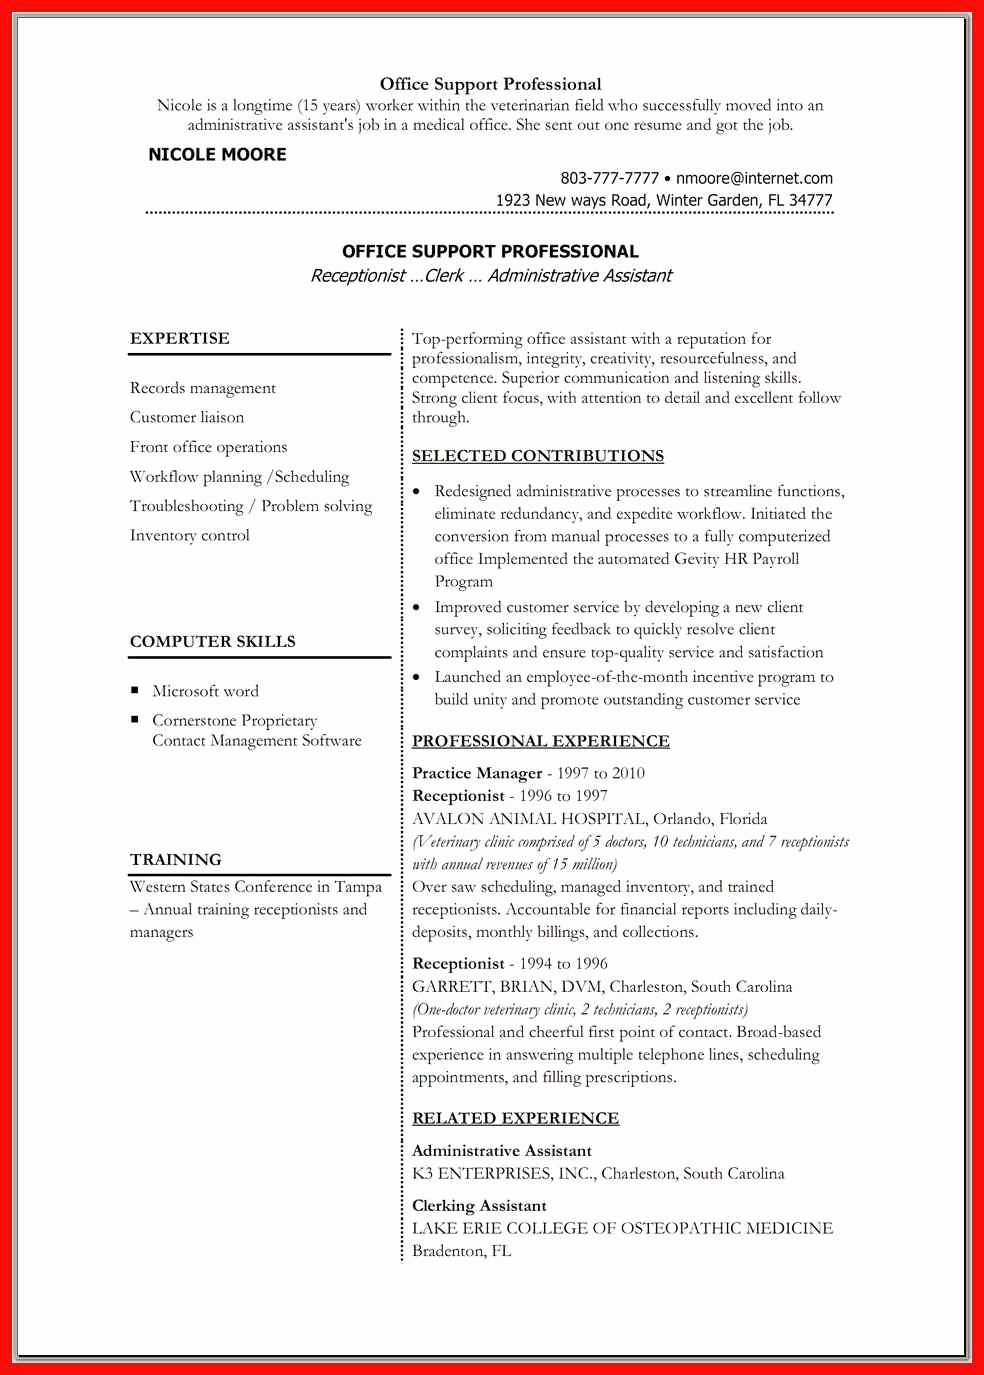 Physician Cv Template Word Inspirational Resume Word Doc Template